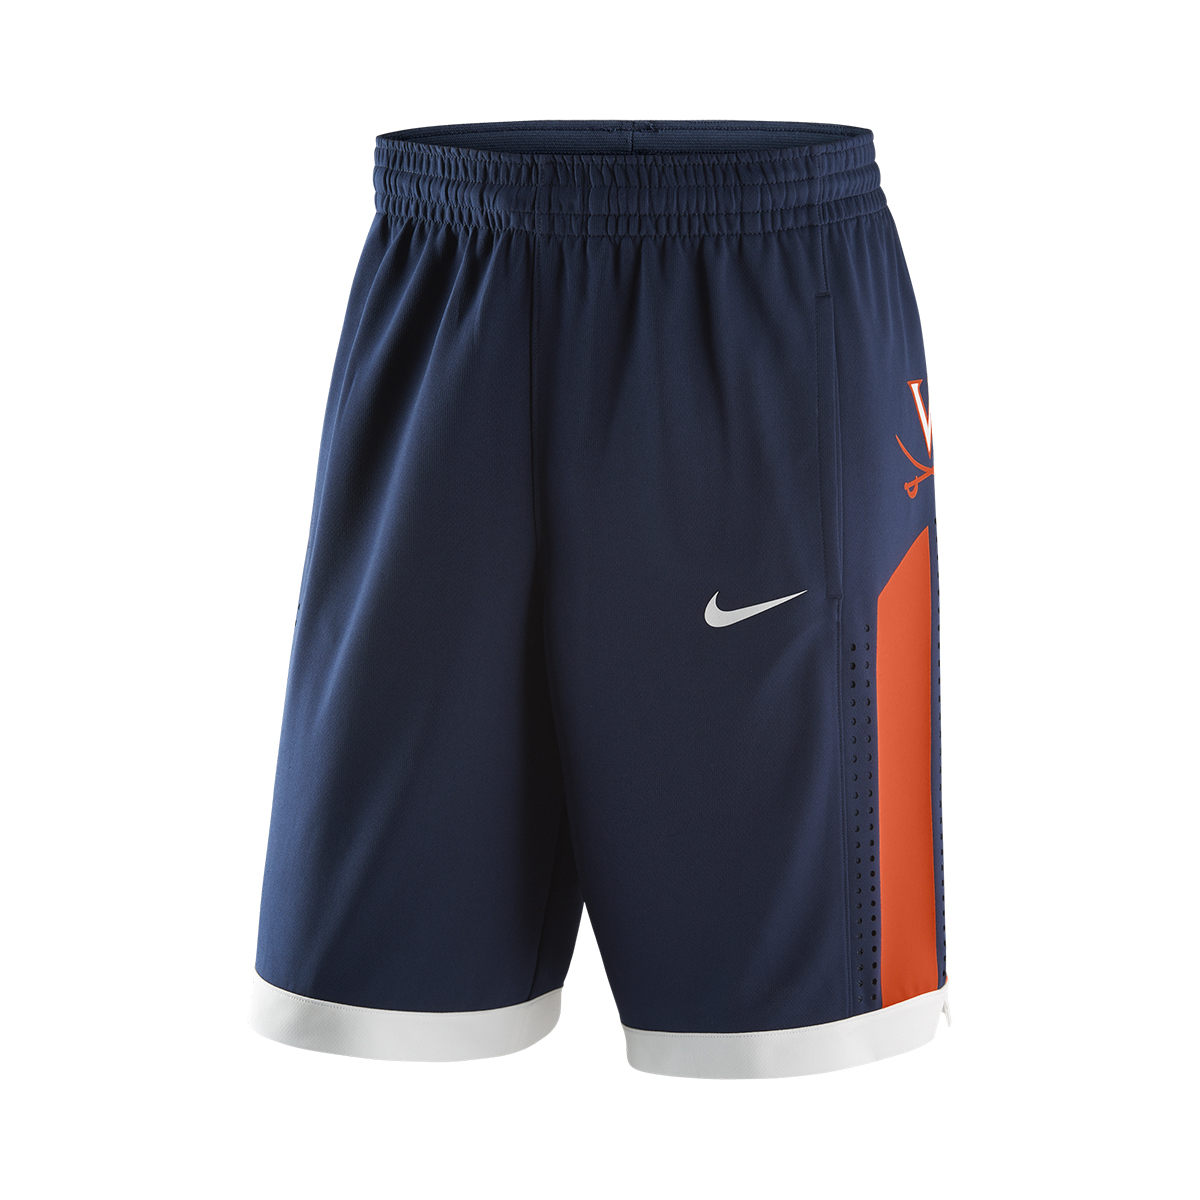 University of Virginia 2018 Nike Navy Basketball Shorts